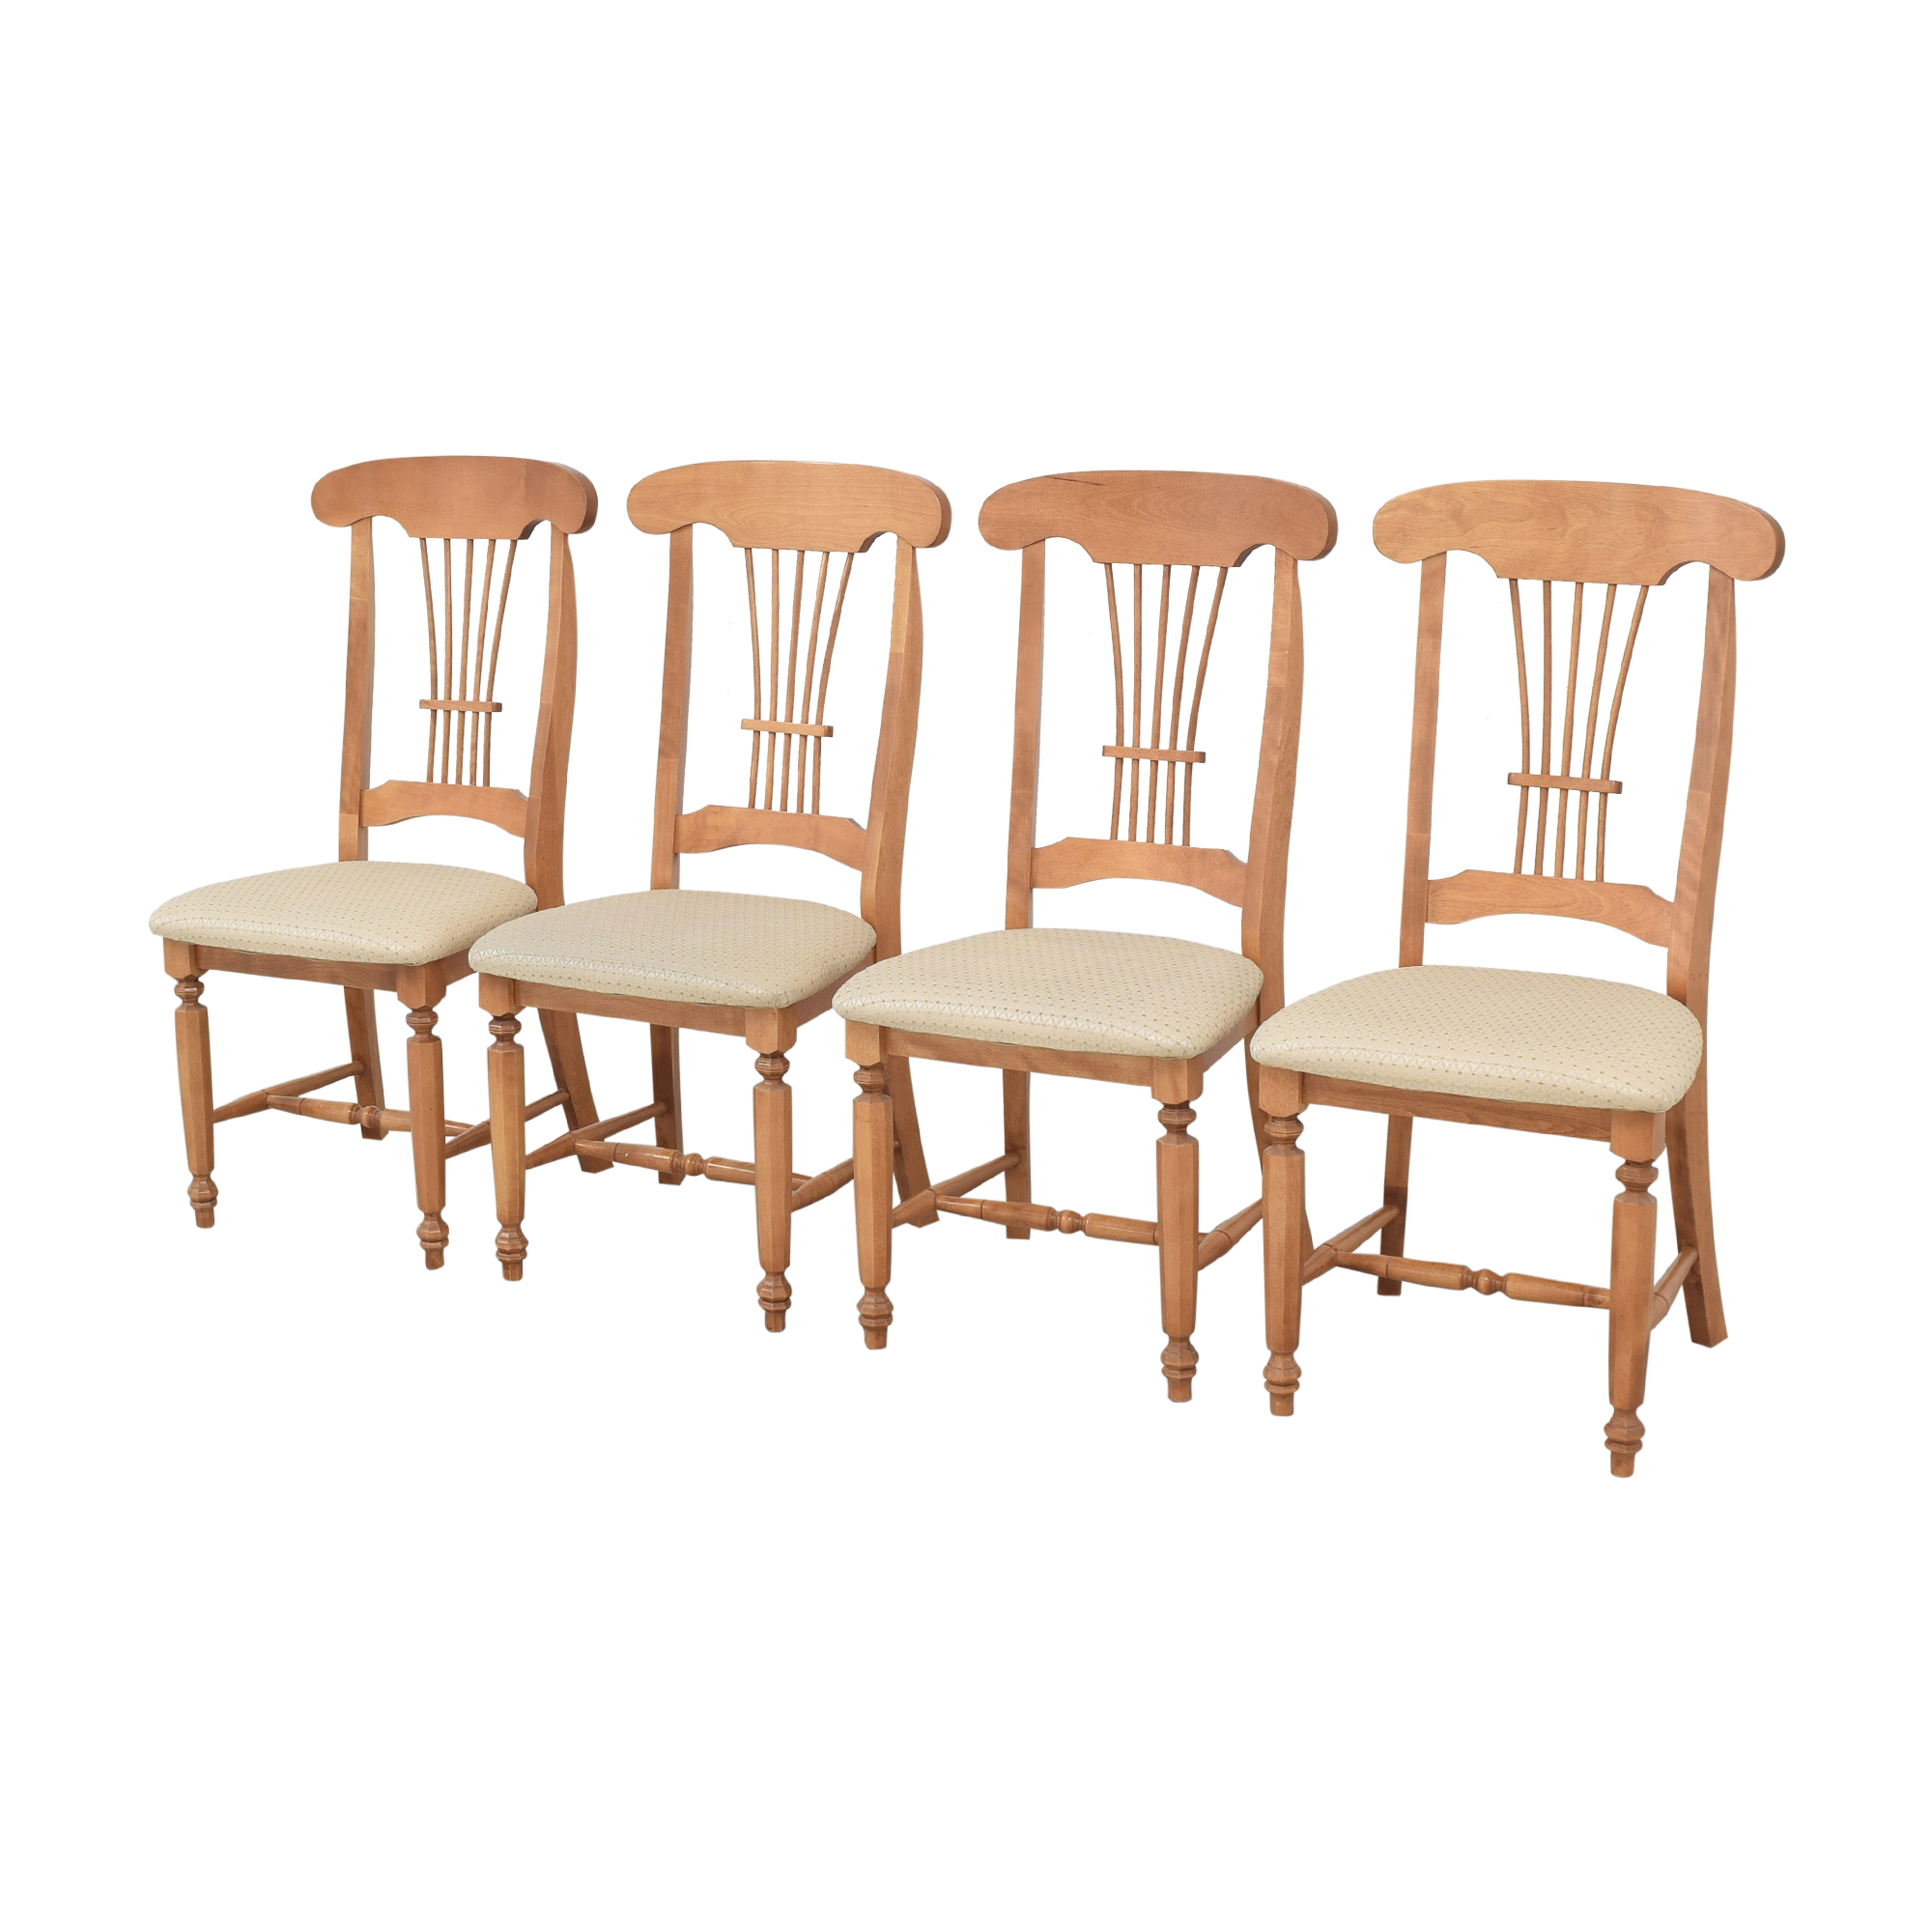 Canadel Upholstered Dining Chairs Canadel